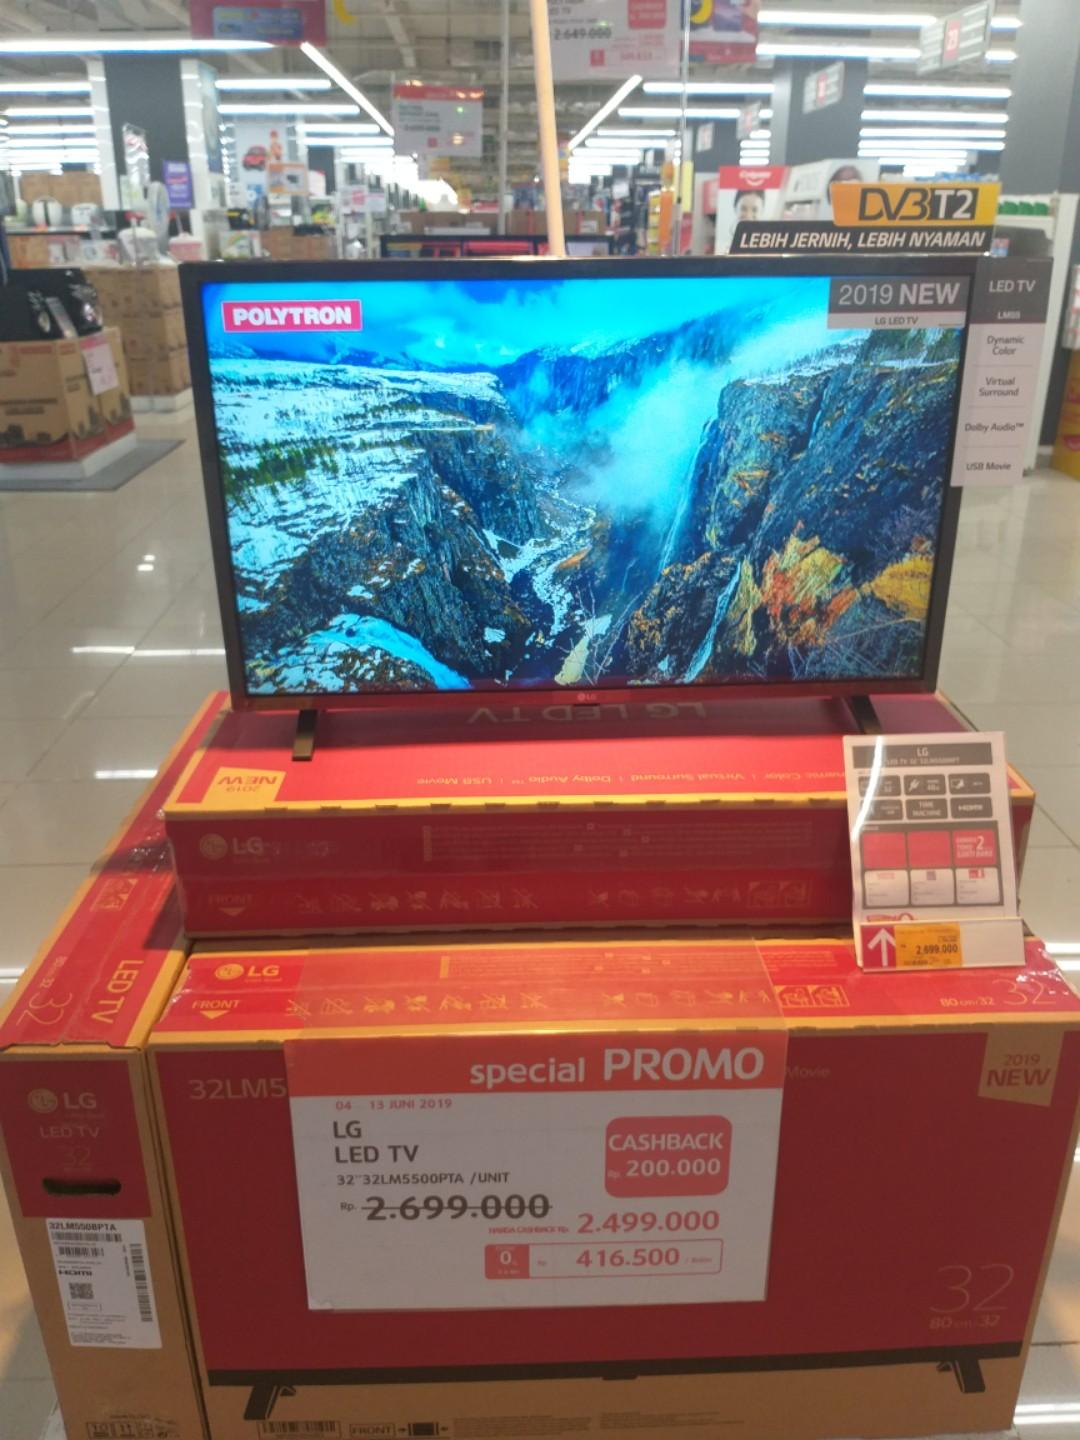 Cuma Bayar DP 450,000 LG LED TV 32 Inch